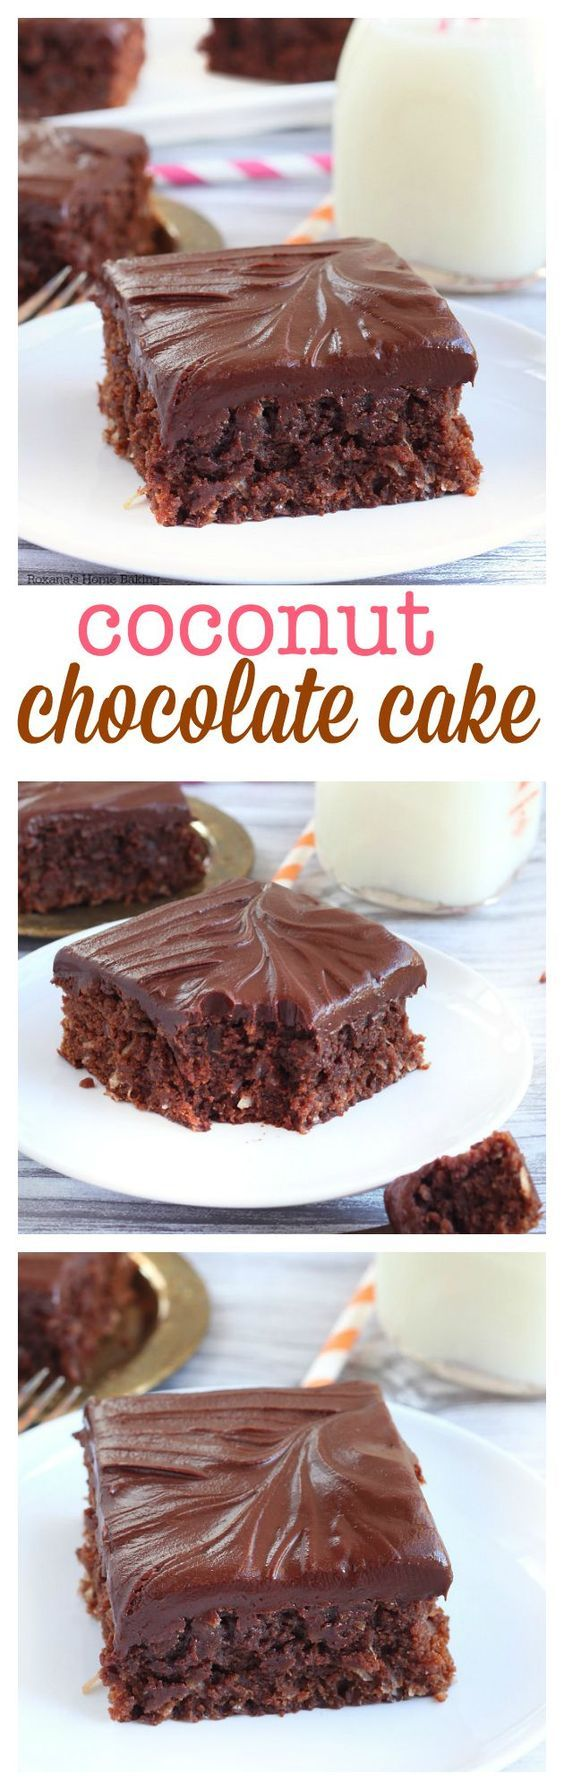 Rich as a brownie but with a cake texture, this double chocolate coconut dessert is bursting with coconut flavor from both the coconut extract and coconut flakes. Top with toasted coconut flakes for a fancy look.